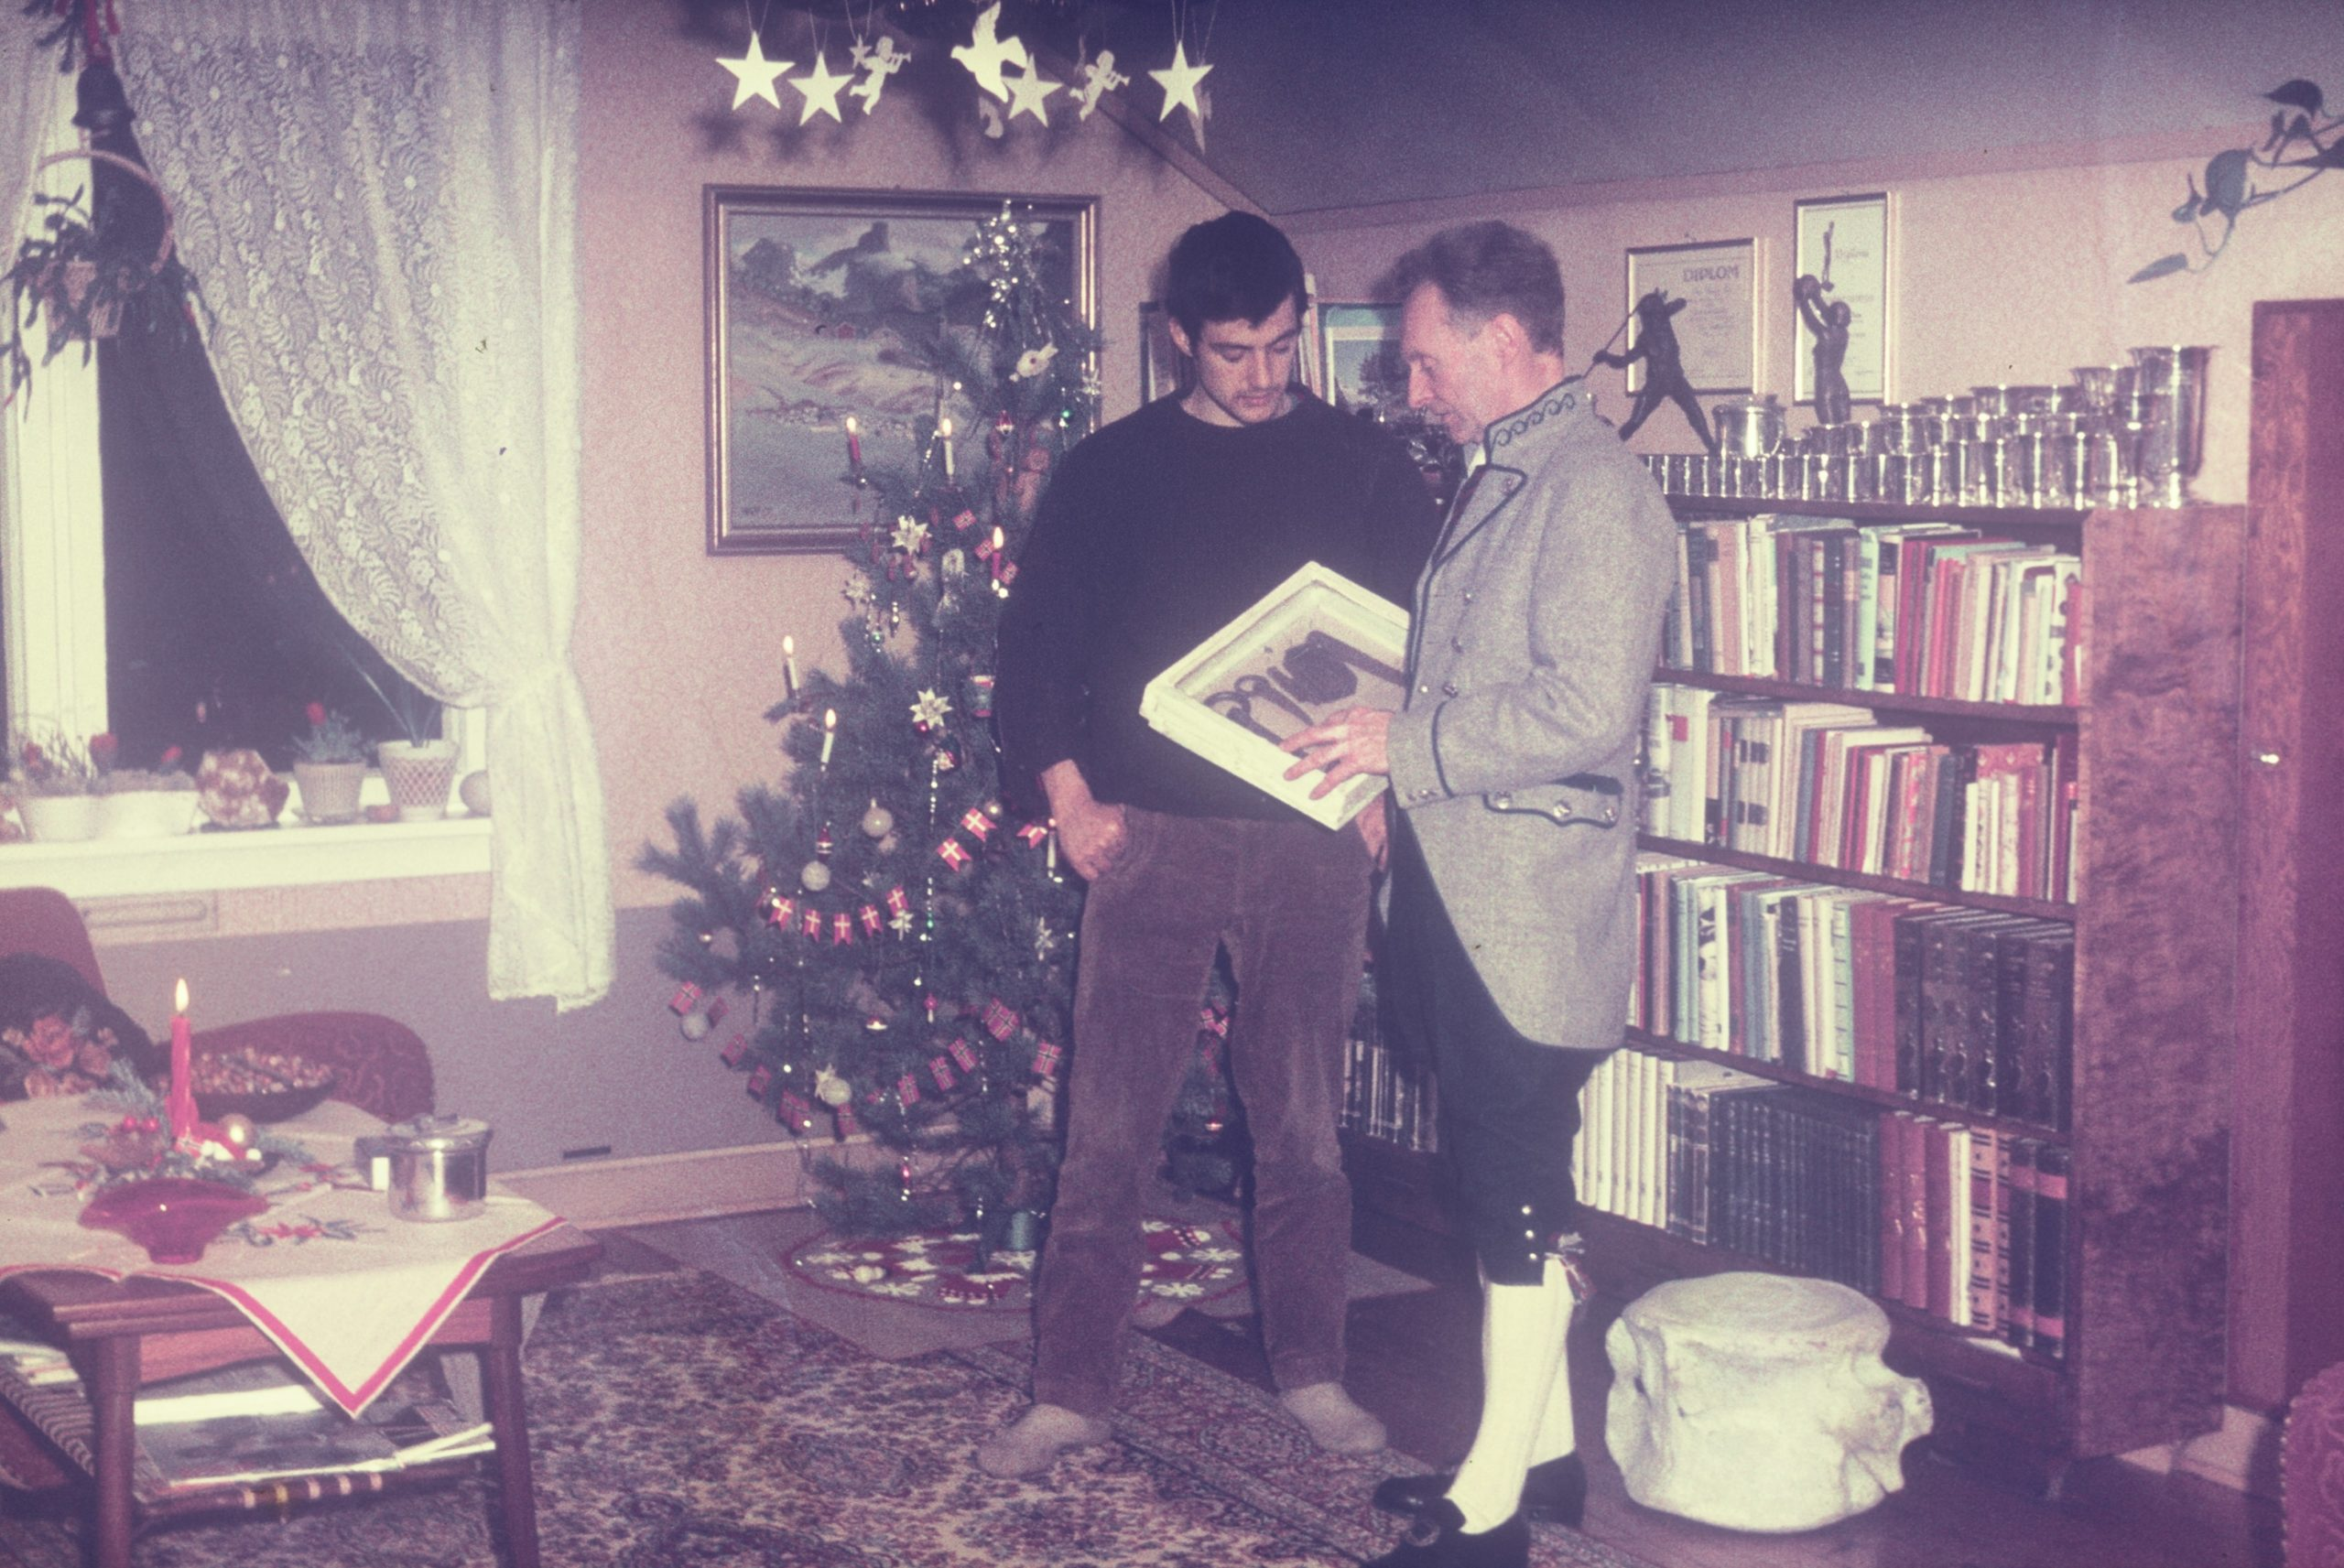 Tony Howard and Arne Randers Heen, New Years Eve 1966/67 in Arne Randers house at Åndalsnes. Photo: Tony Howard Collection.